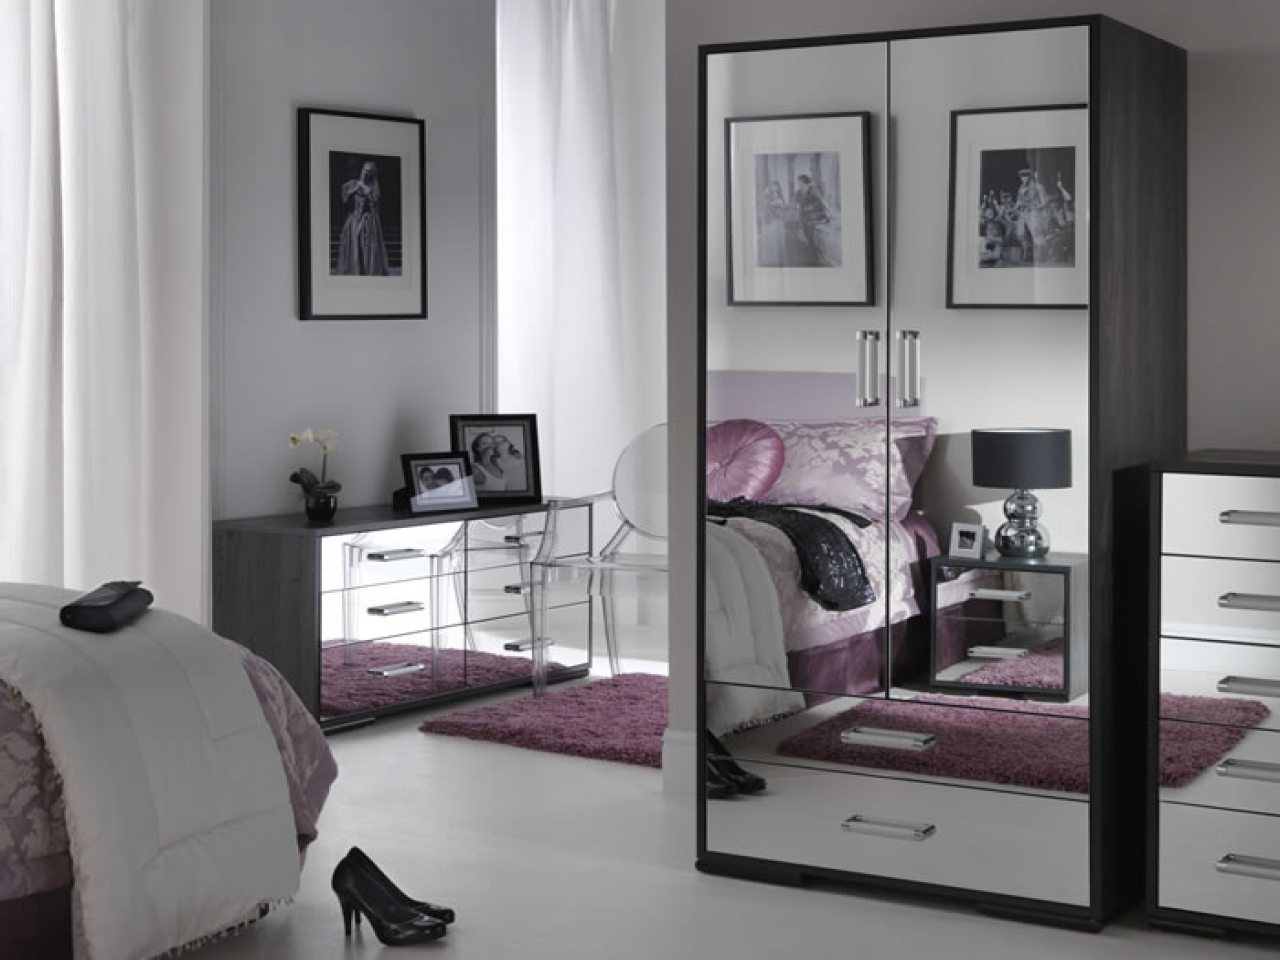 Mirrored Bedroom Set Furniture 28 Images Mirrored Furniture Bedroom Sets Bedroom Home Design